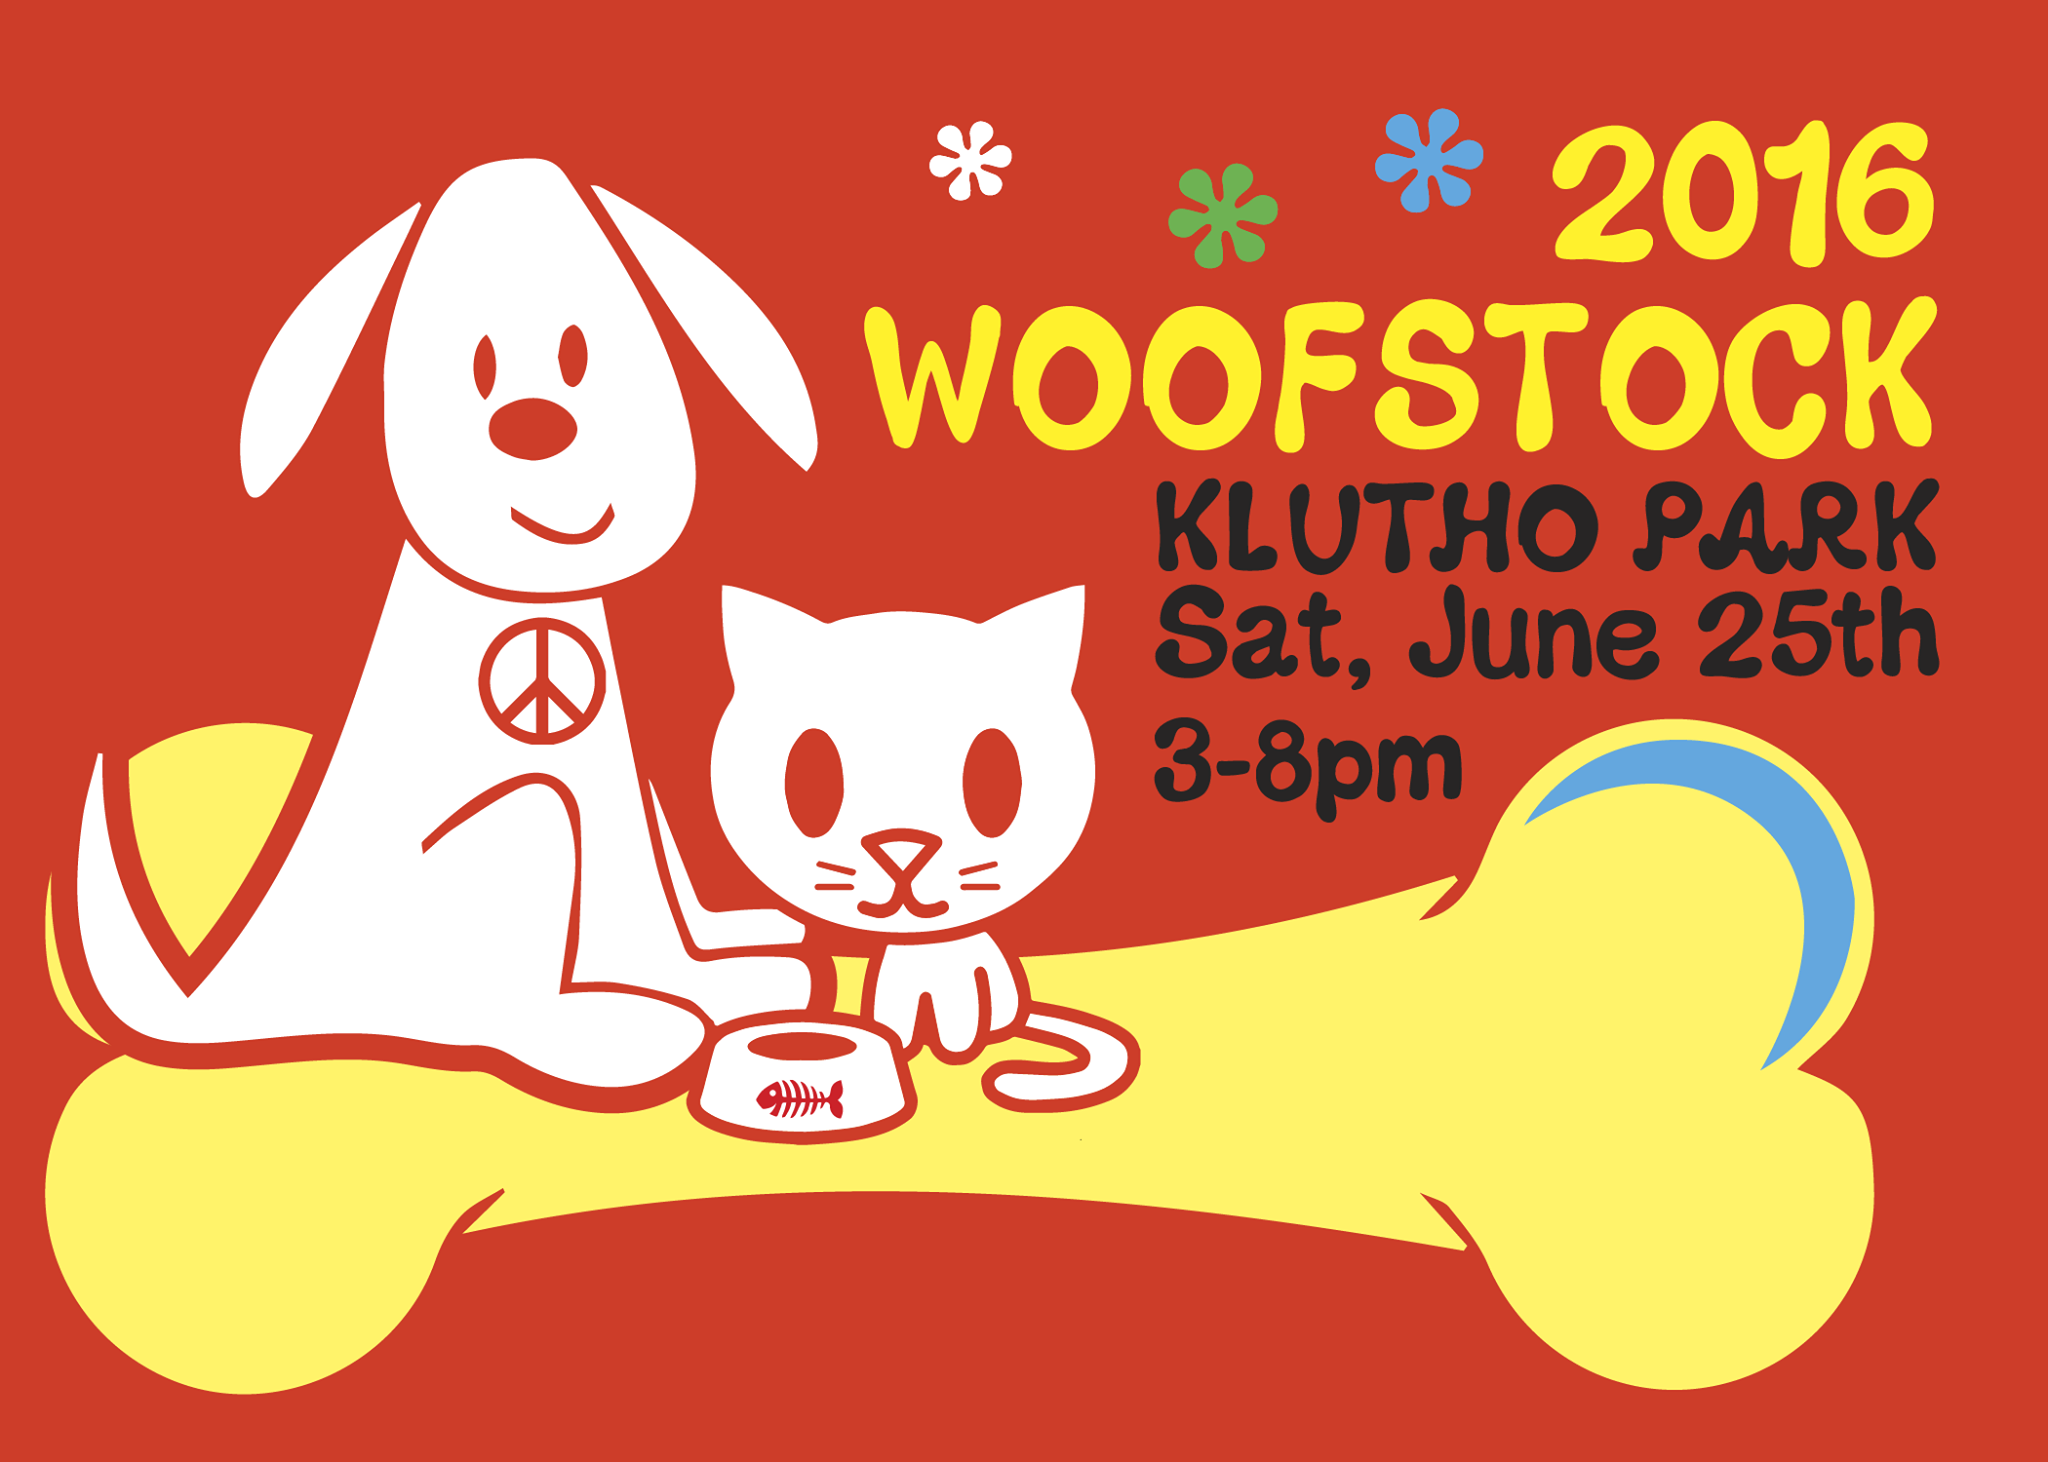 woofstock_2016.png